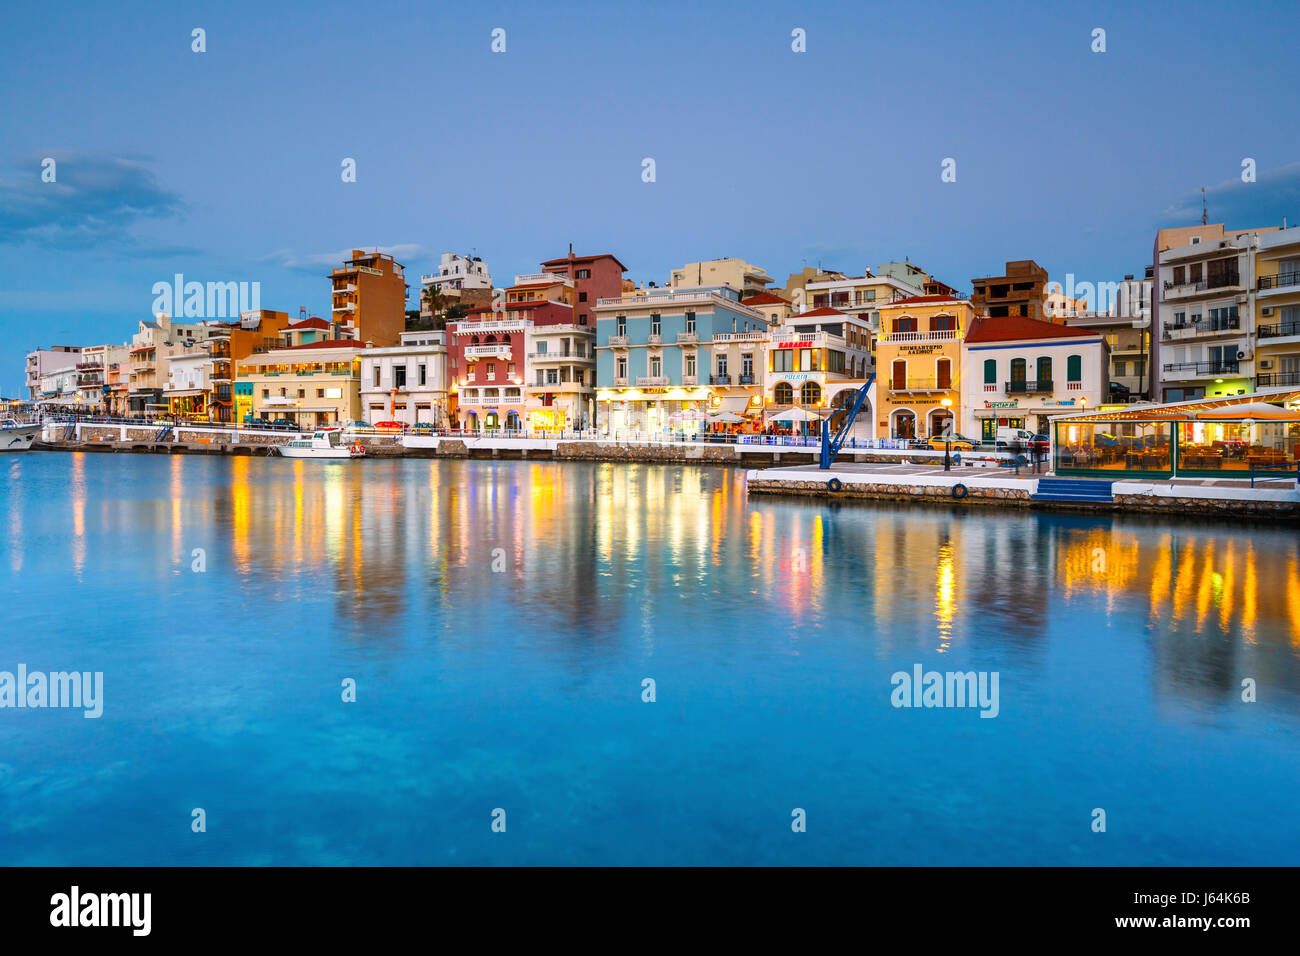 Evening view of Agios Nikolaos and its harbor, Crete, Greece. - Stock Image